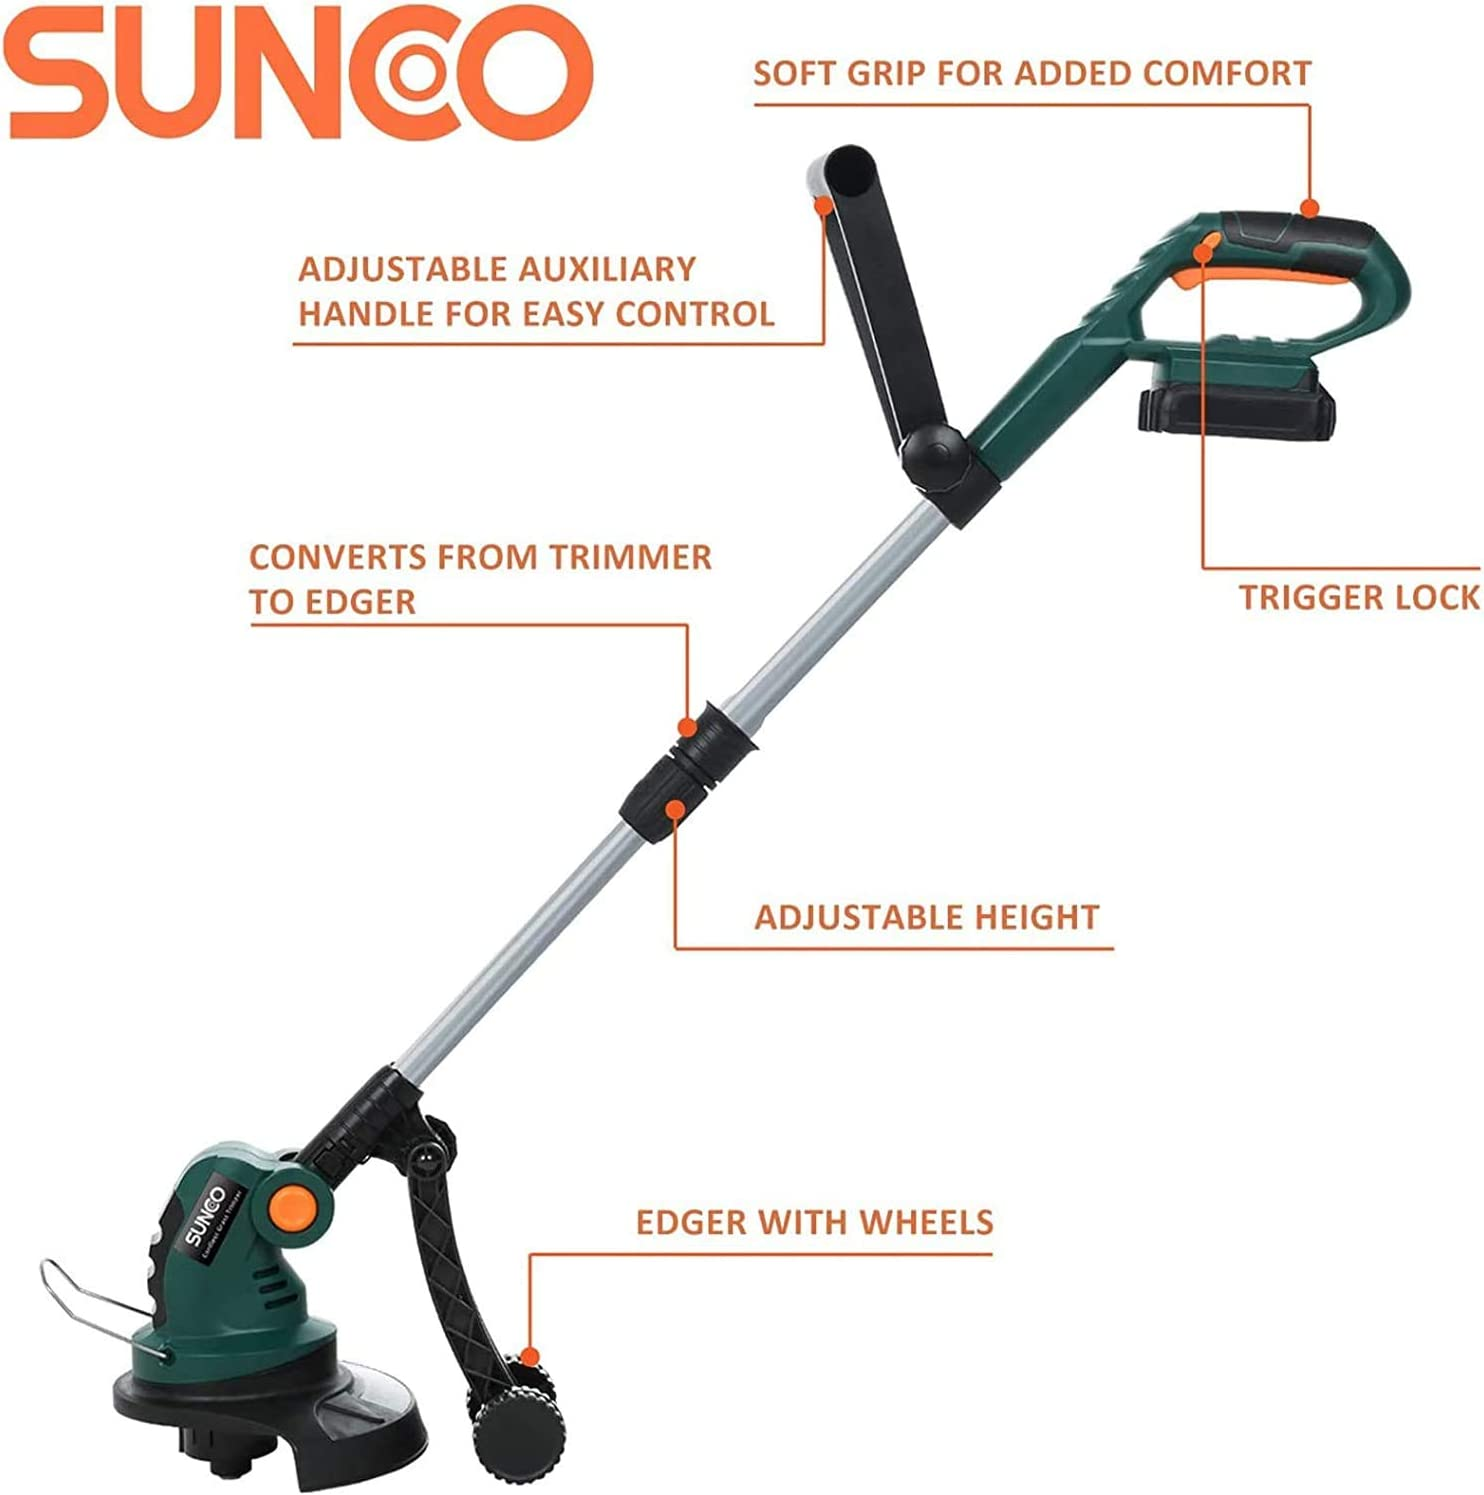 Battery Powered 2-in-1 Convertible Auto Feed Strimmer w//Battery /& Charger SUNCOO 9.4-Inch Cordless String Trimmer Edger 20V Height Adjustable Electric Lawn Grass Trimmers Edgers